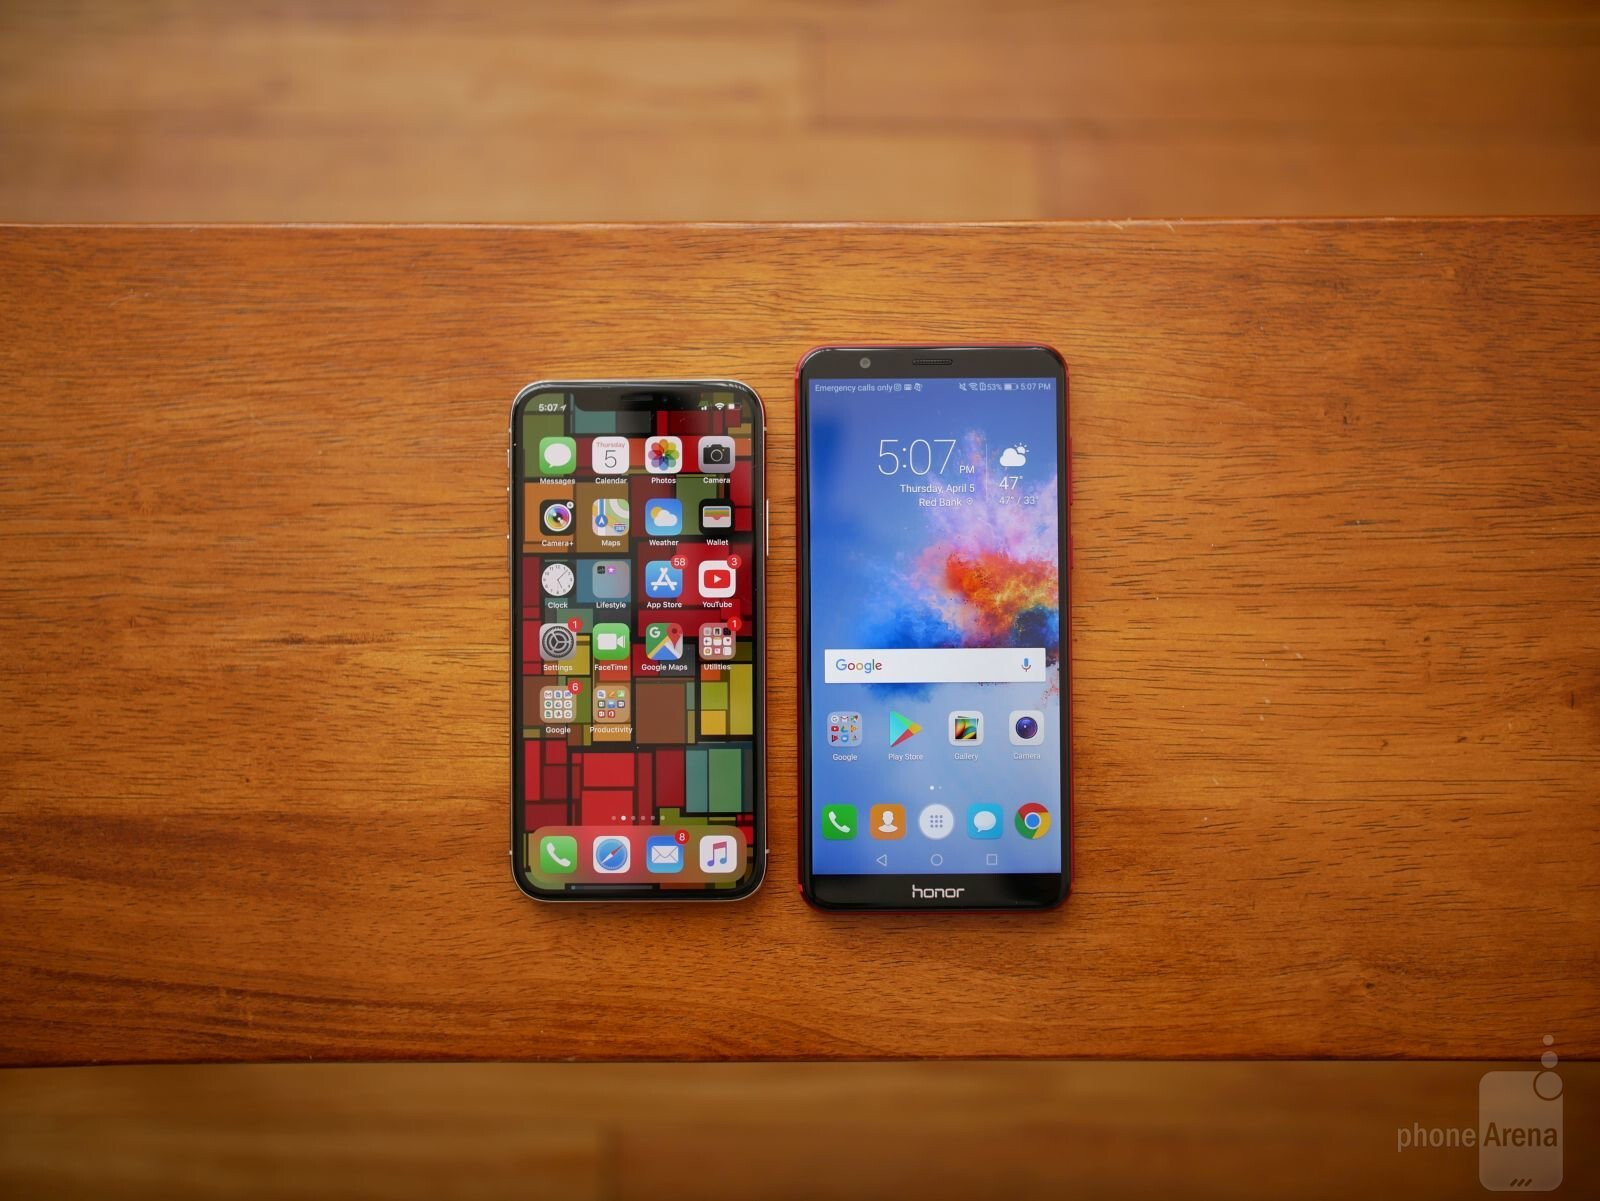 I switched my $1000 iPhone X for a $200 phone and it was not all